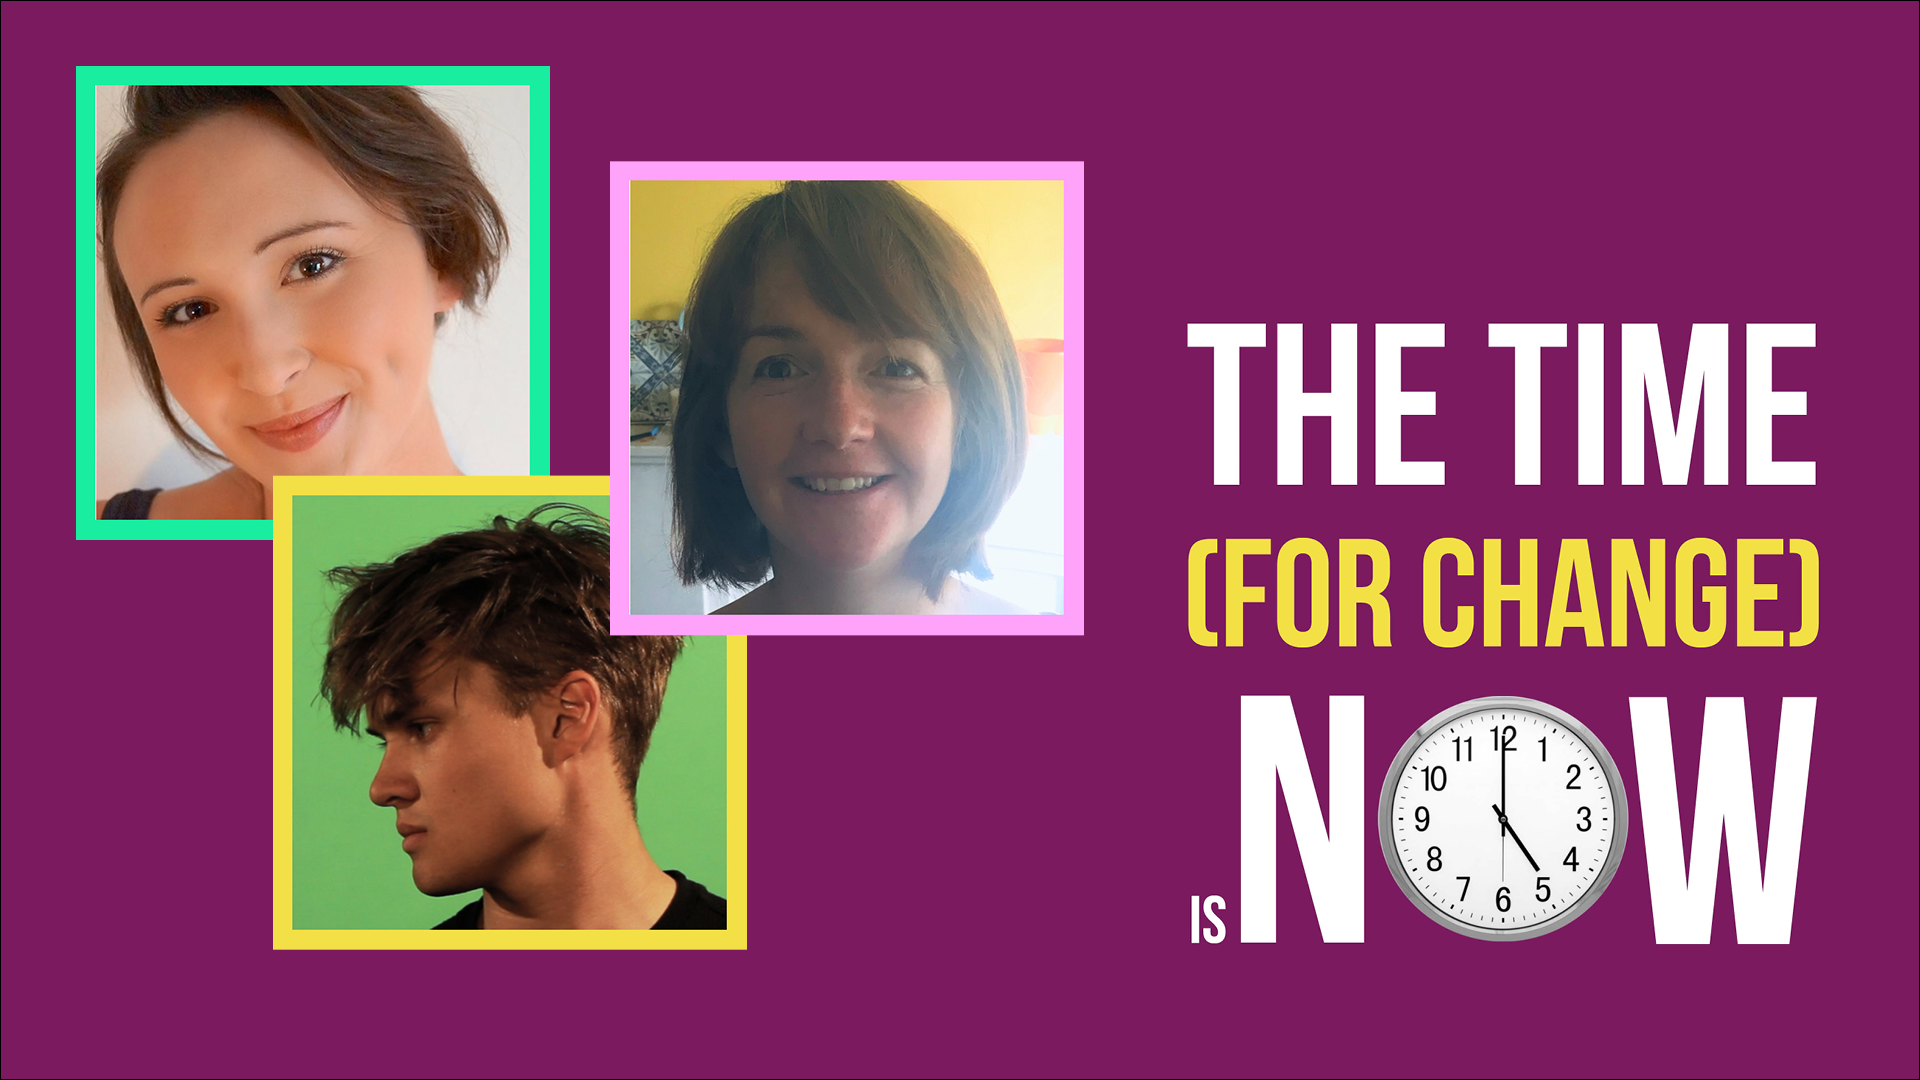 The Time (for change) is now - with participants' headshots